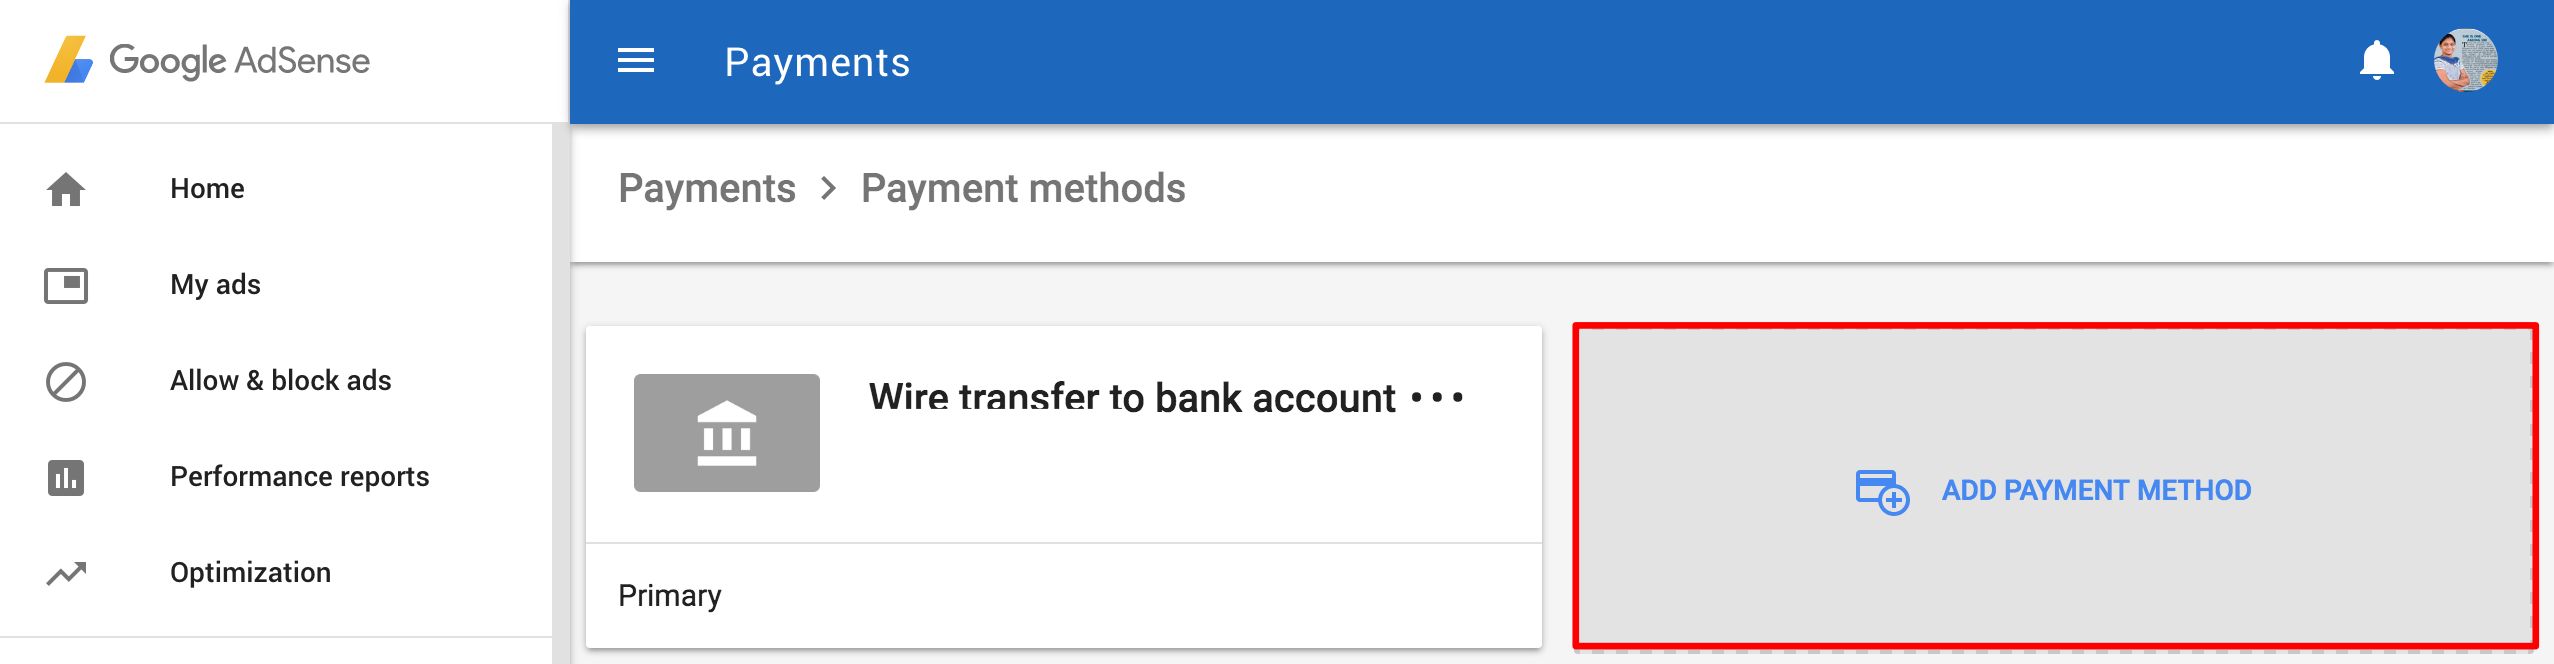 add-edit-bank-payee-name-add-payment-method-google-new-adsense-dashboard